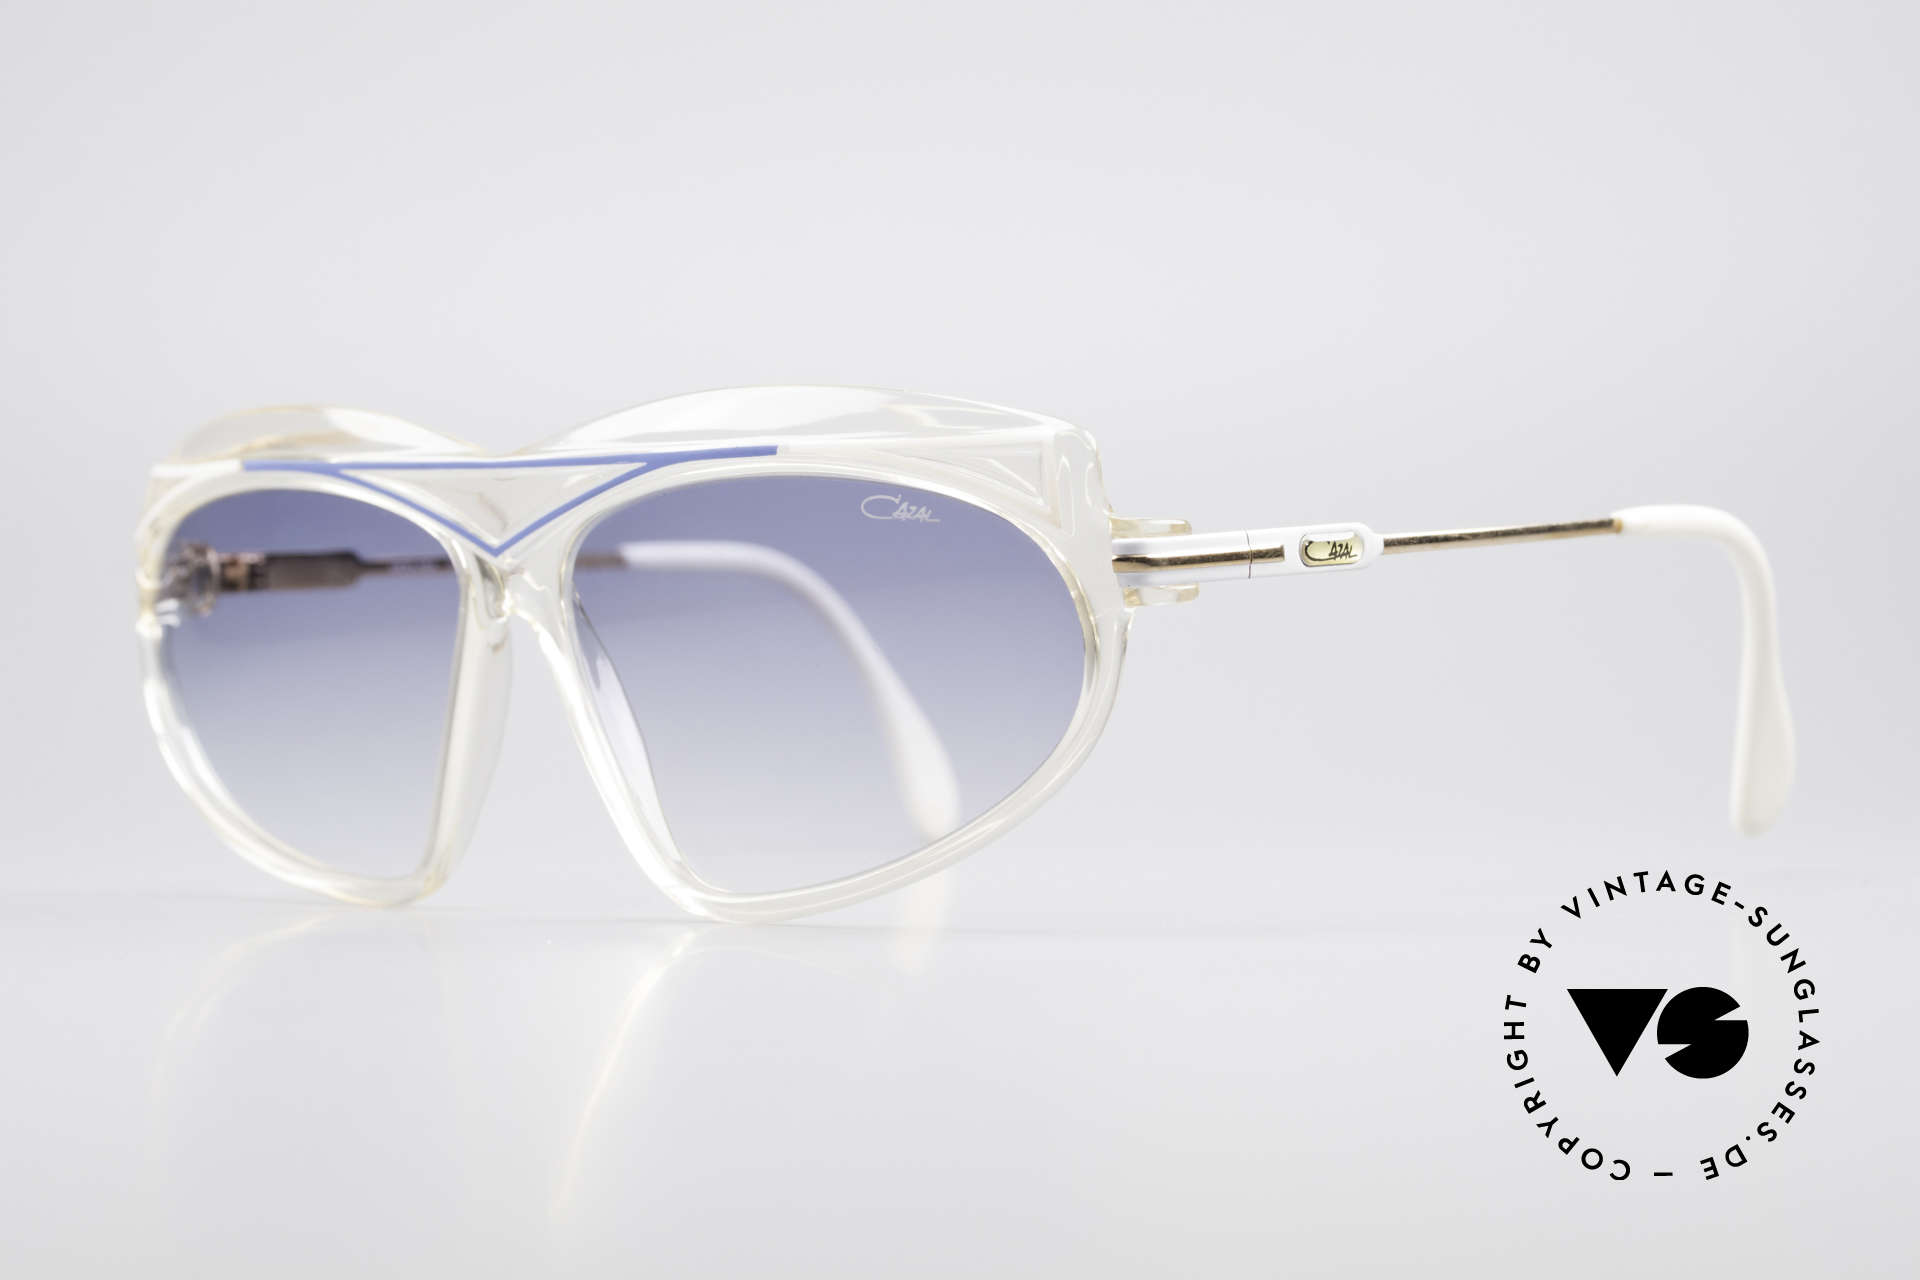 Cazal 854 True Vintage XL HipHop Shades, distinctive designer shades by CAri ZALoni = CAZAL, Made for Women